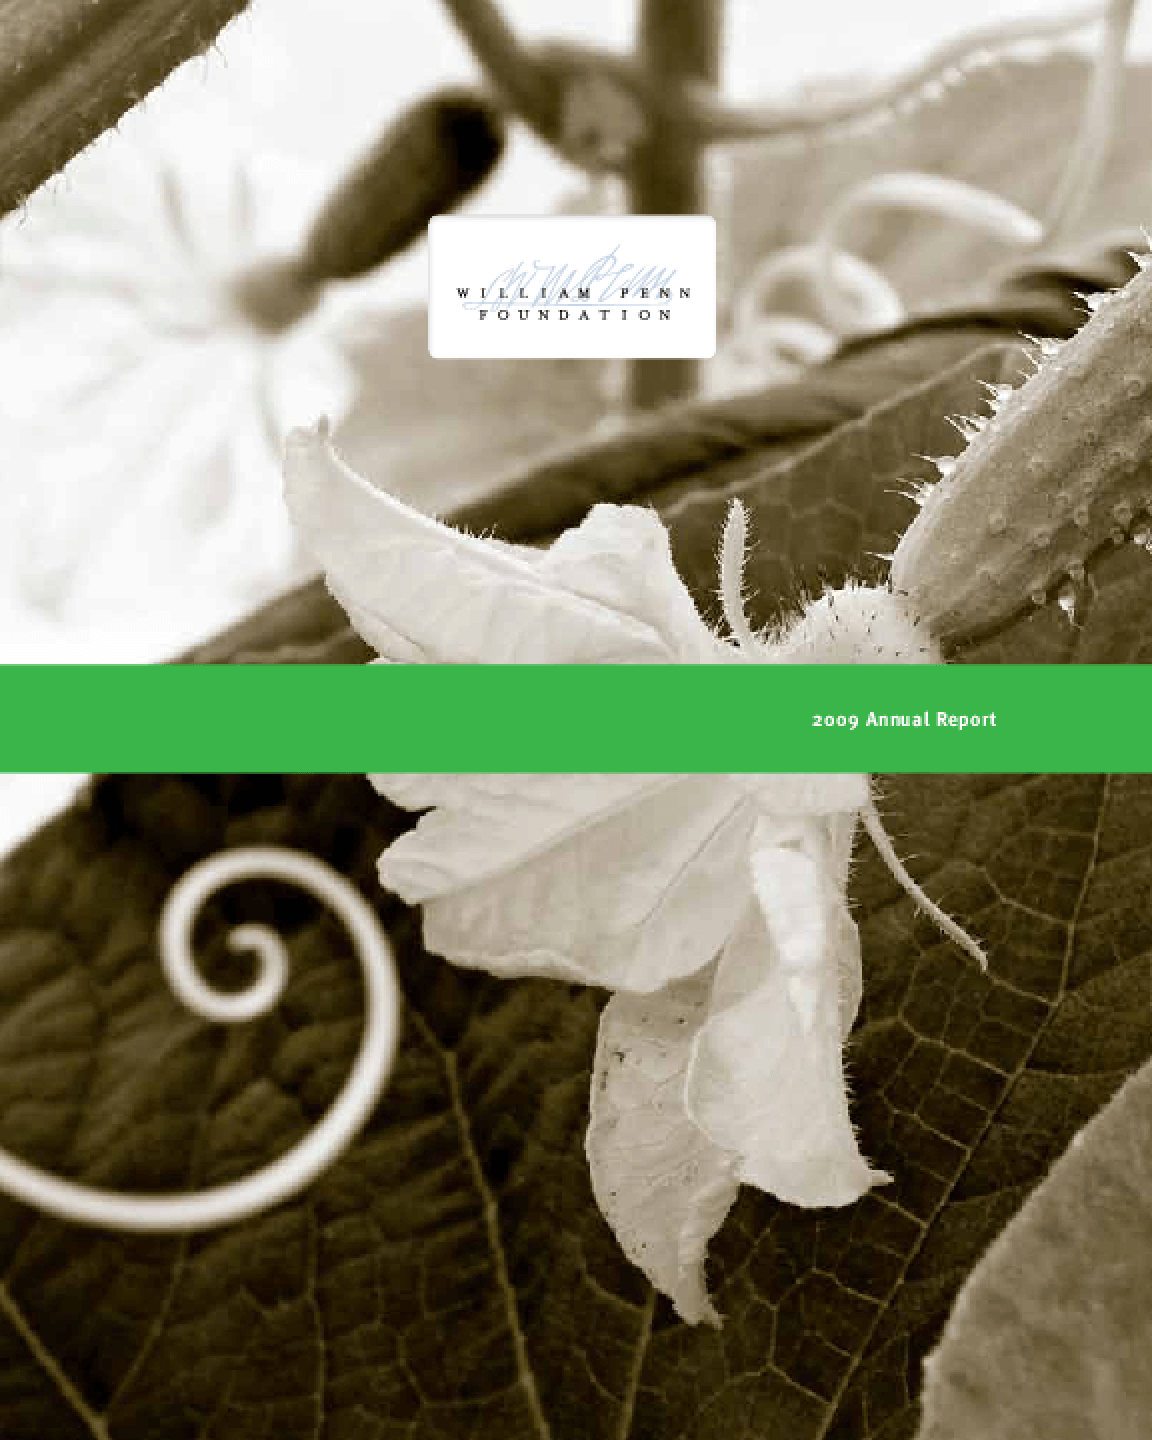 William Penn Foundation - 2009 Annual Report